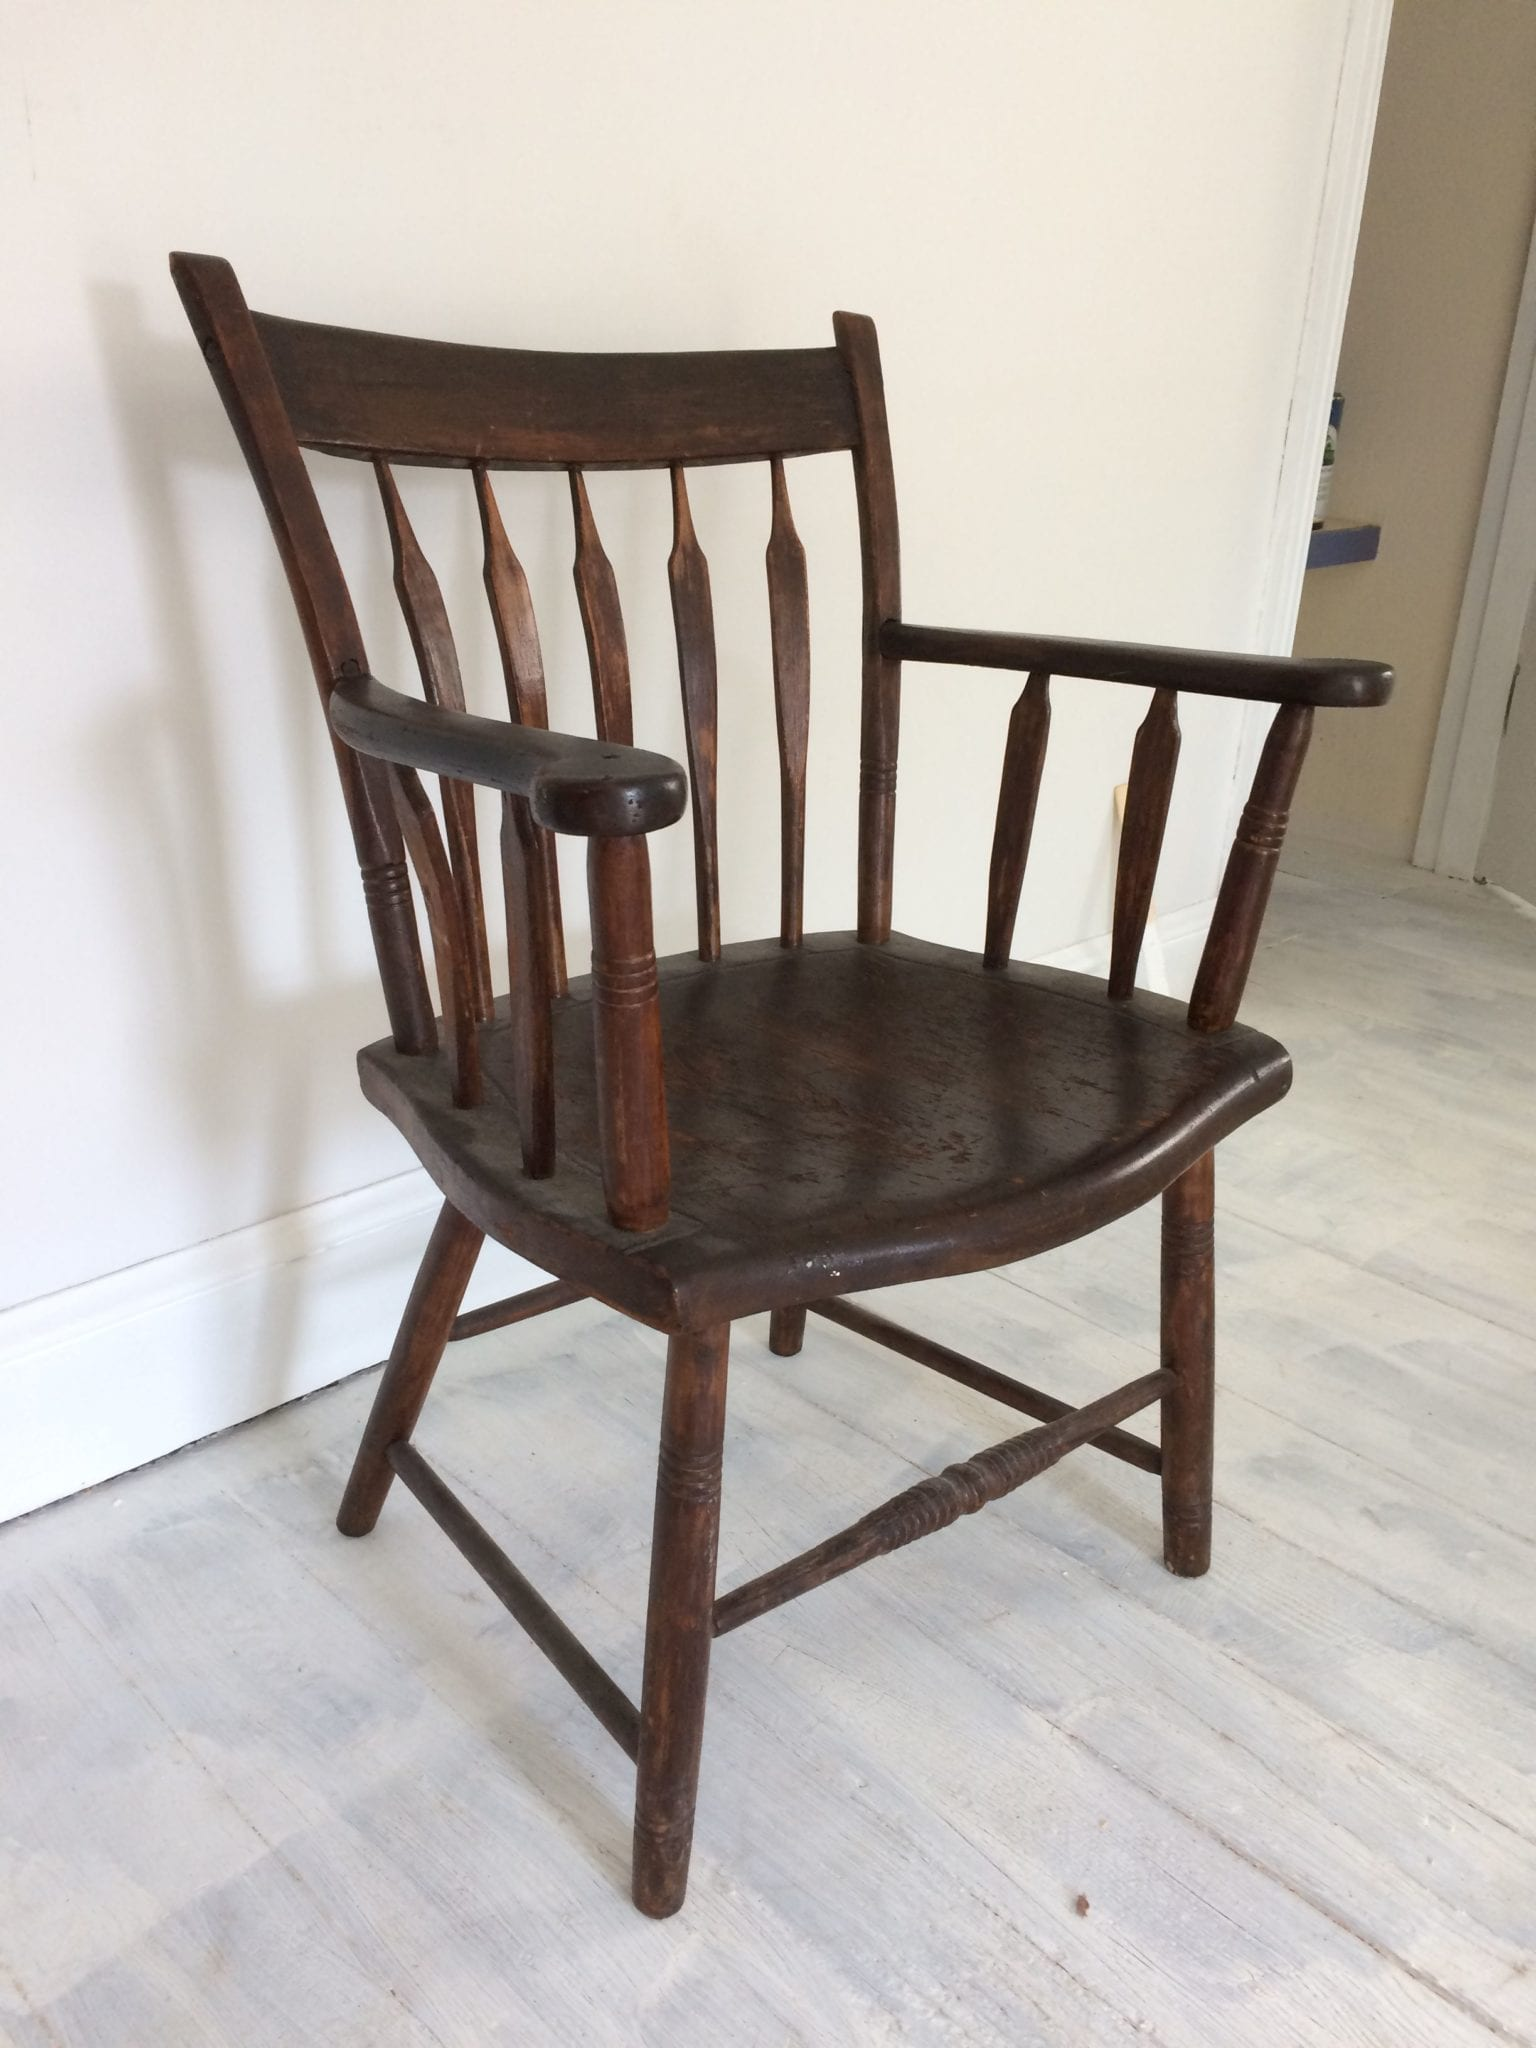 The Journey of the Vestry Chair